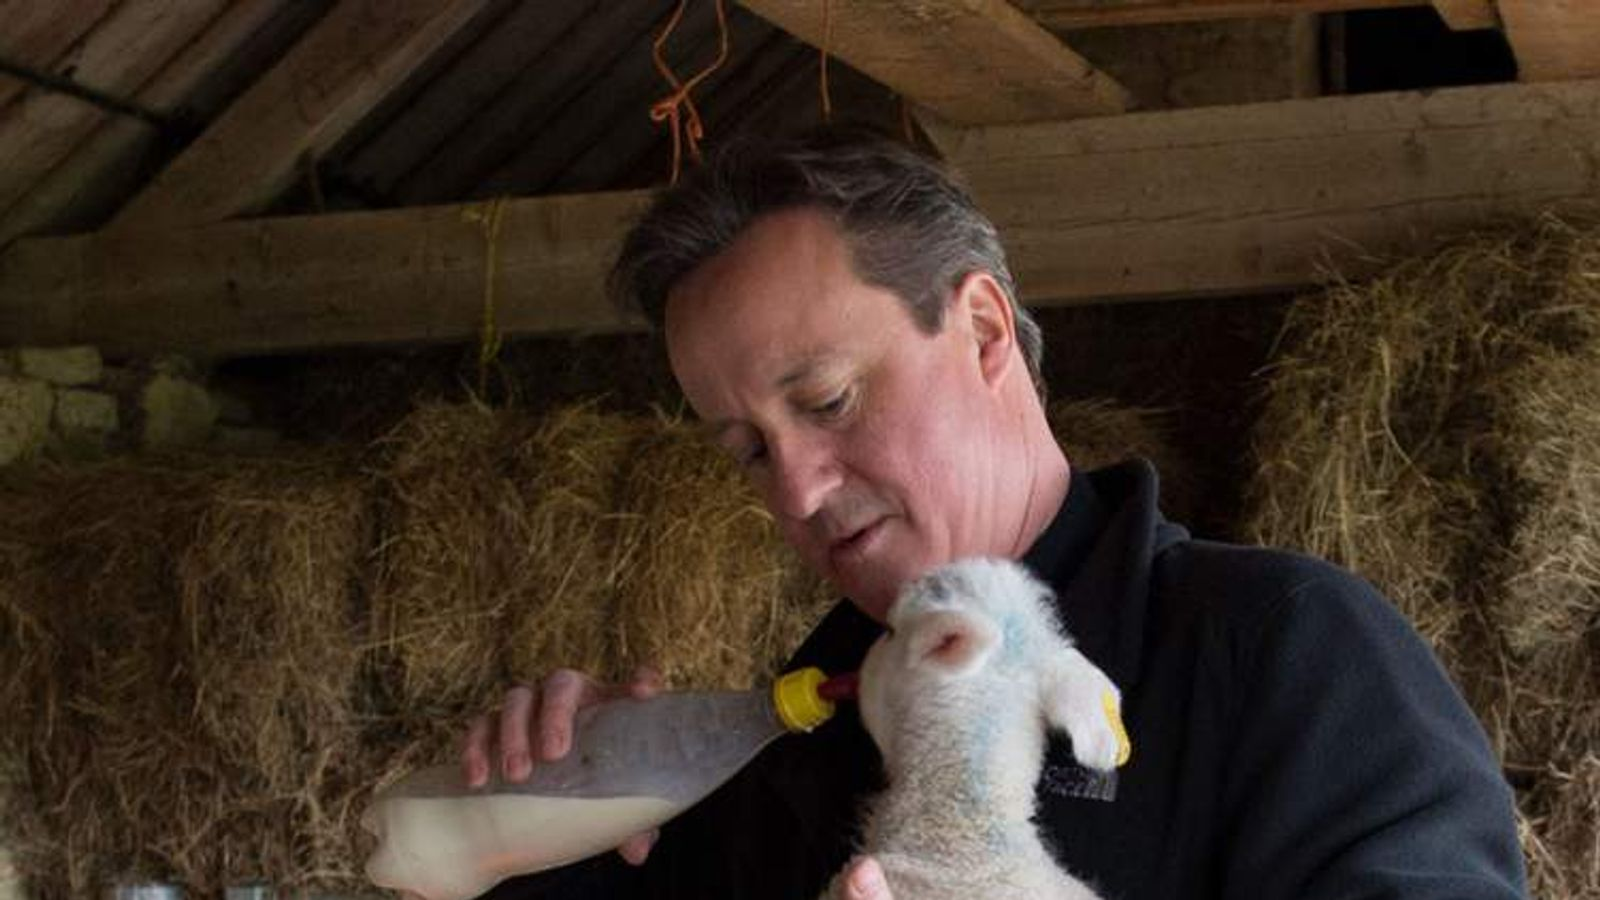 Prime Minister David Cameron helps to feed a newborn lamb